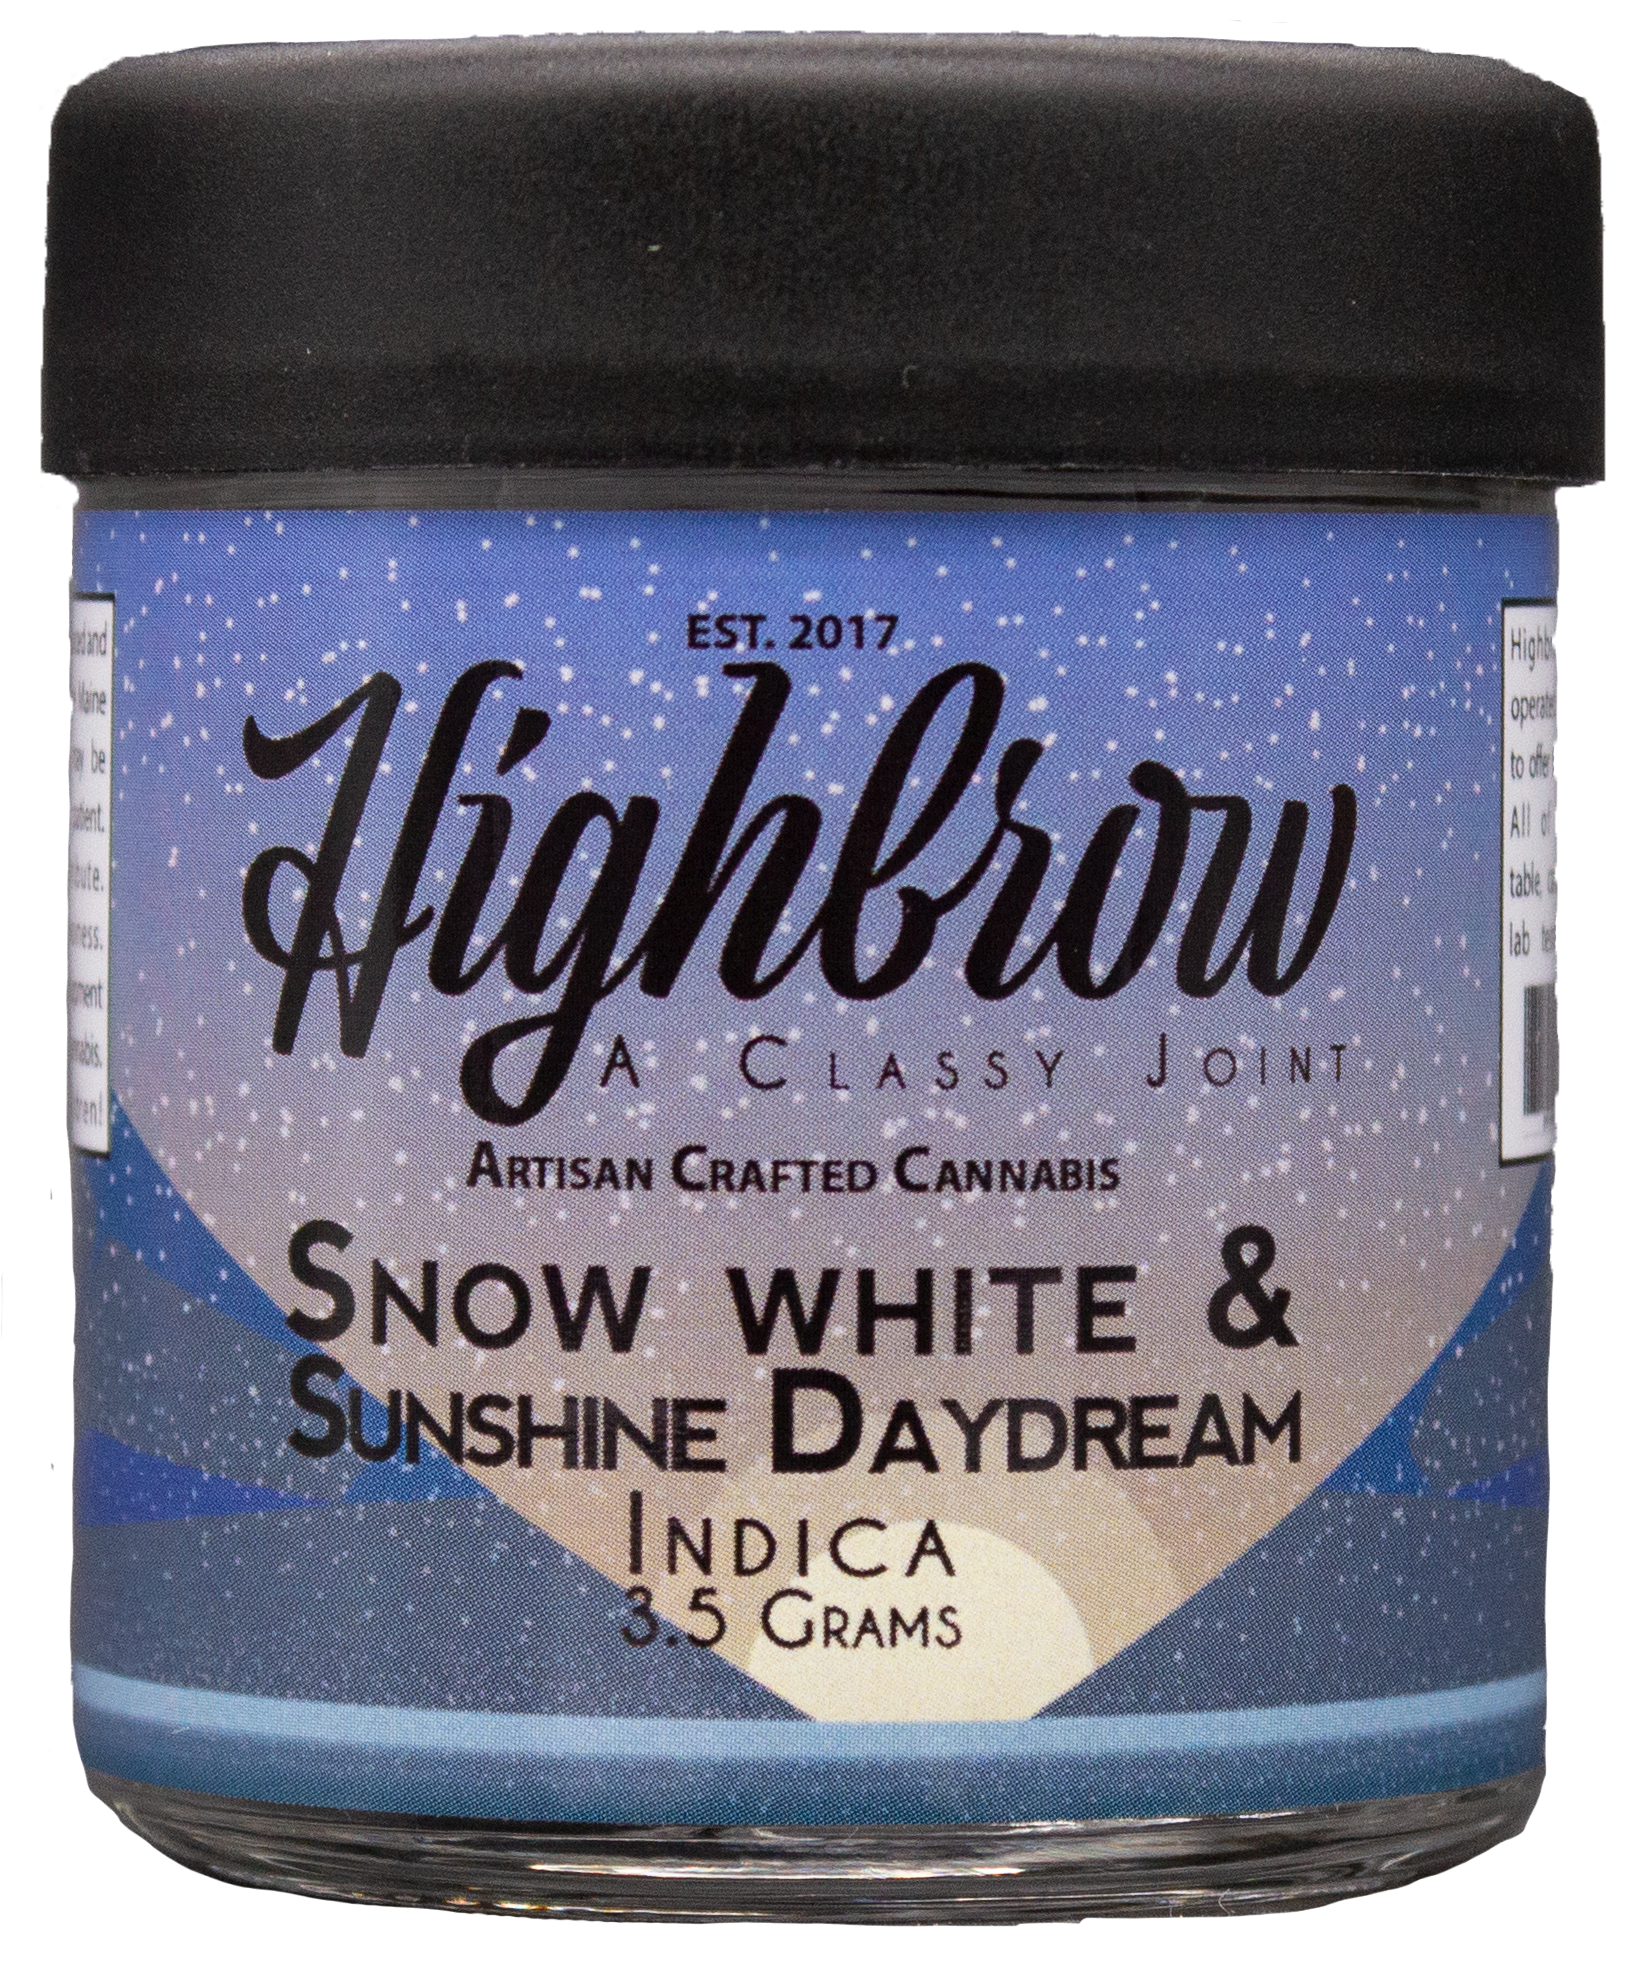 Snow White & Sunshine Daydream - It snows in this daydream paradise.